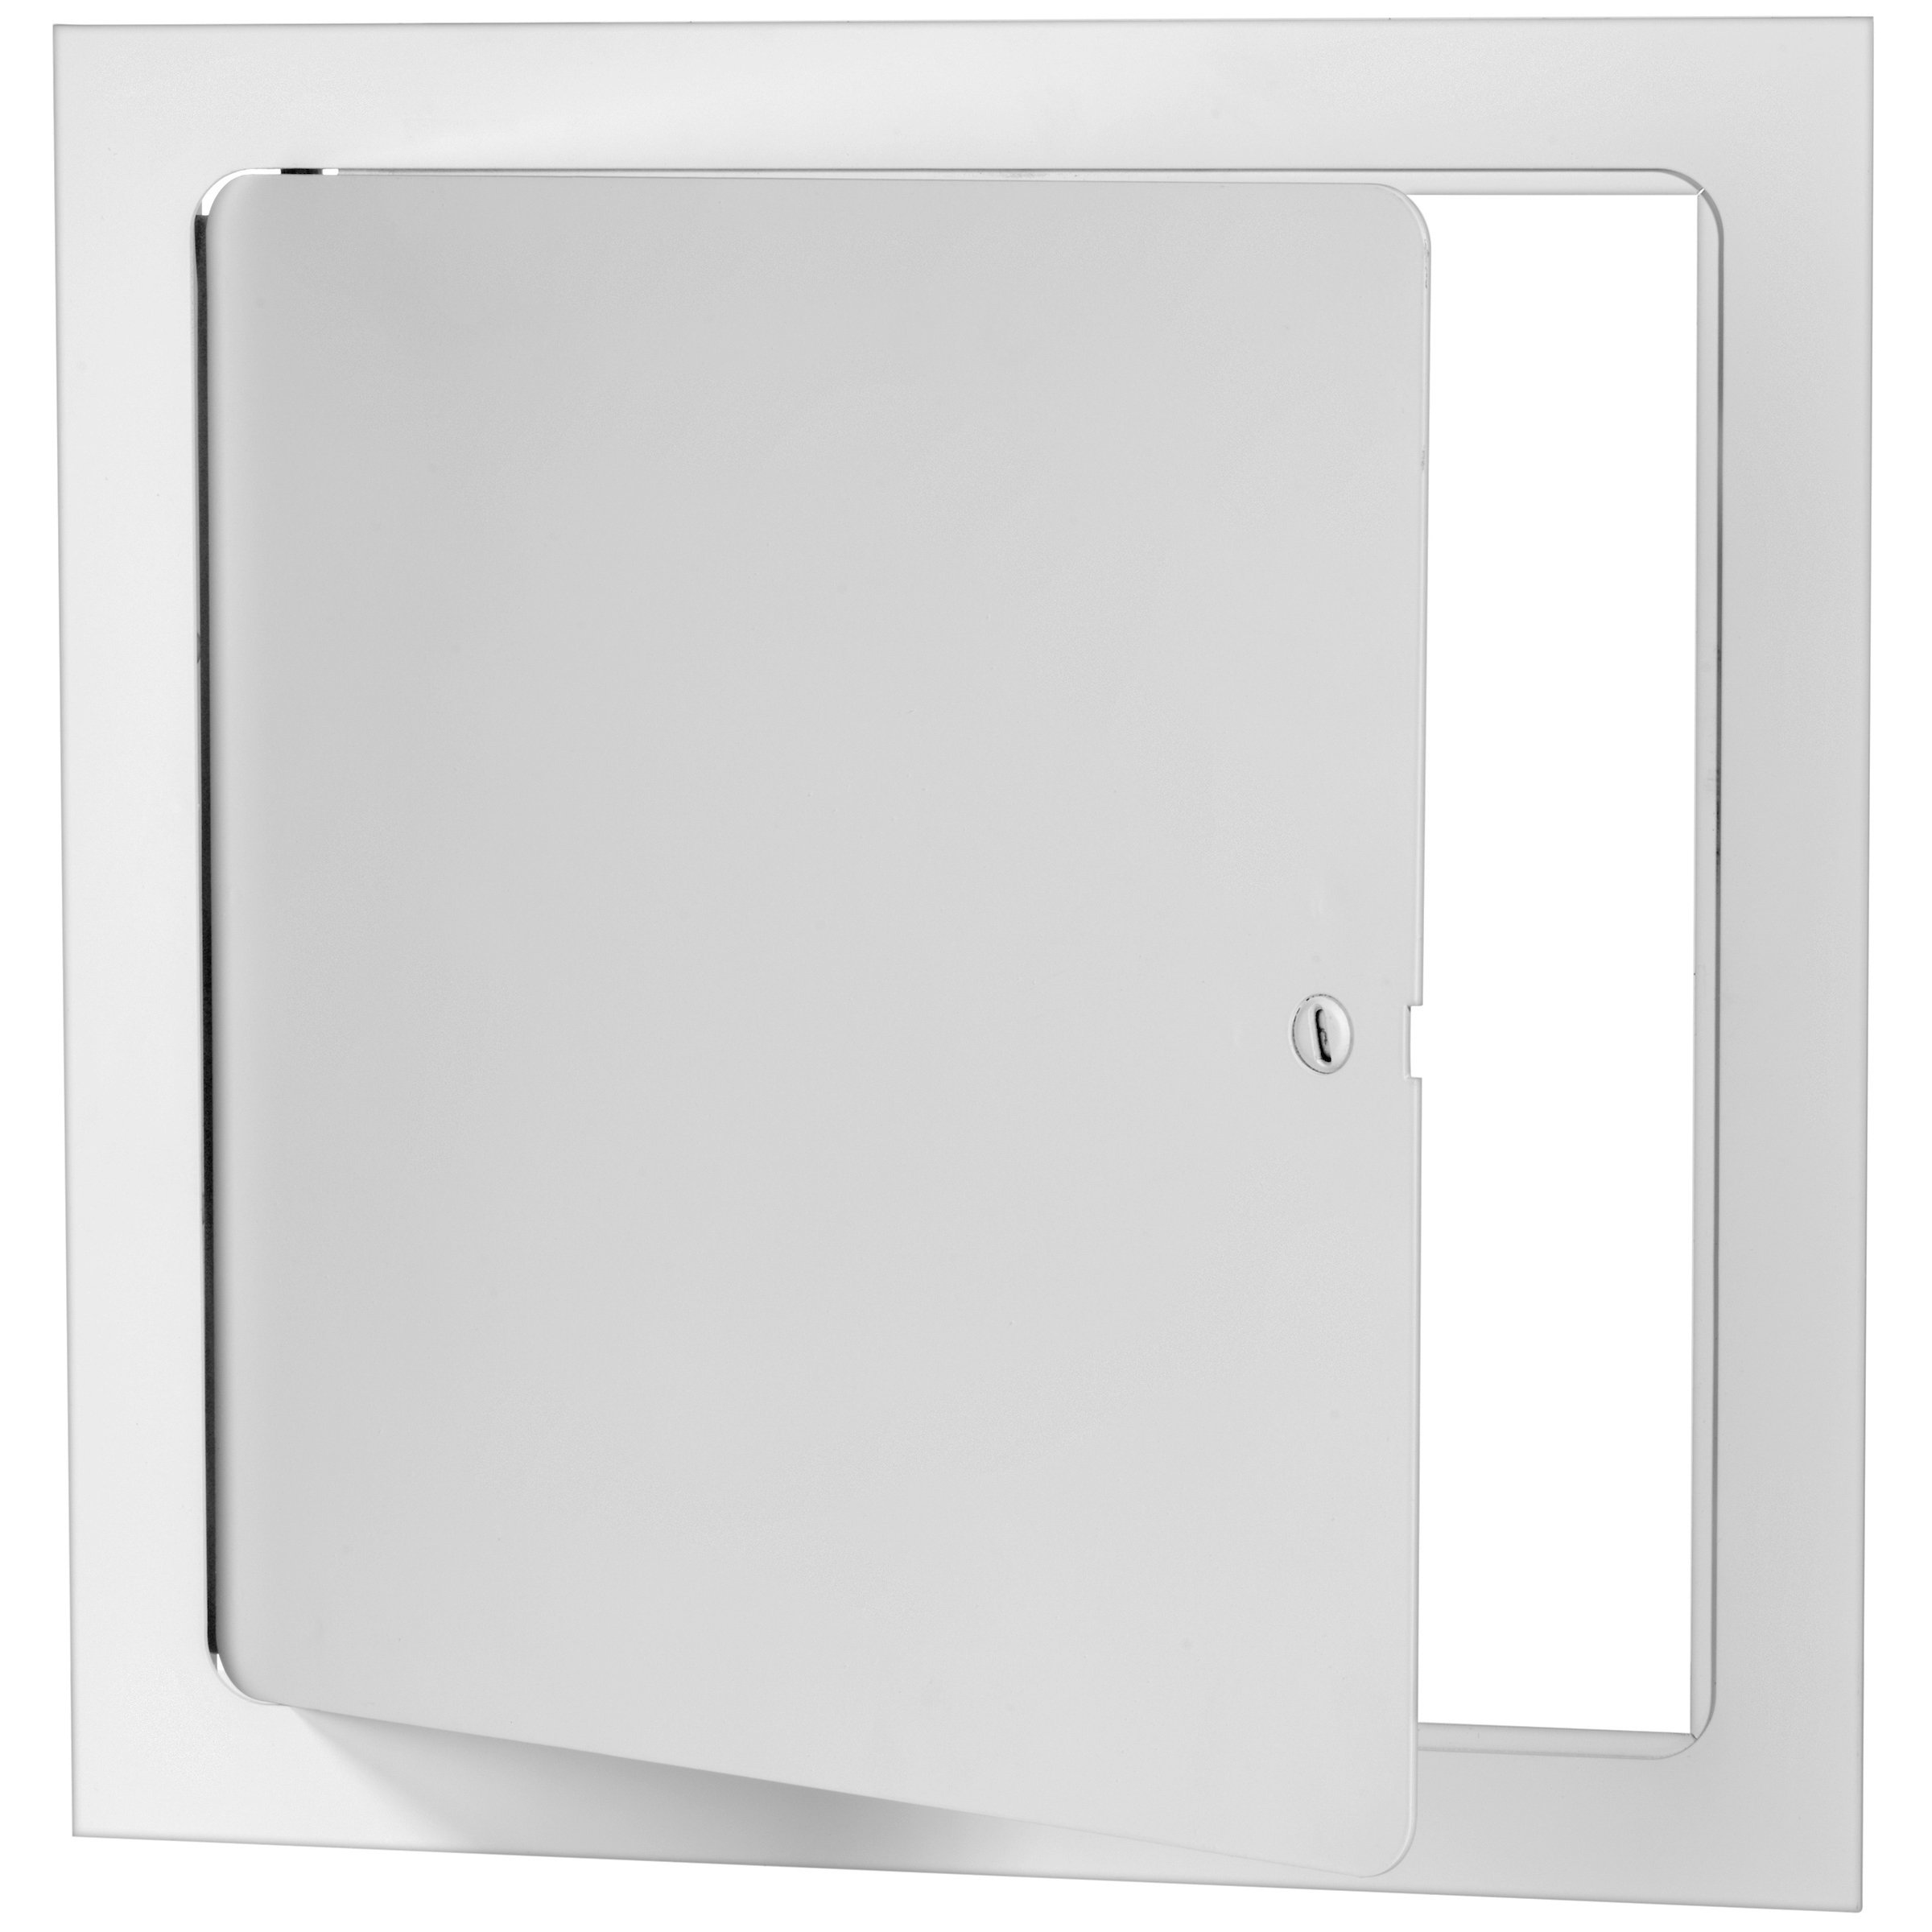 Premier 5000 Series Commercial Grade Steel Access Door, 18 x 18 Flush Universal Mount, White (Screwdriver Latch) by Premier Access Doors